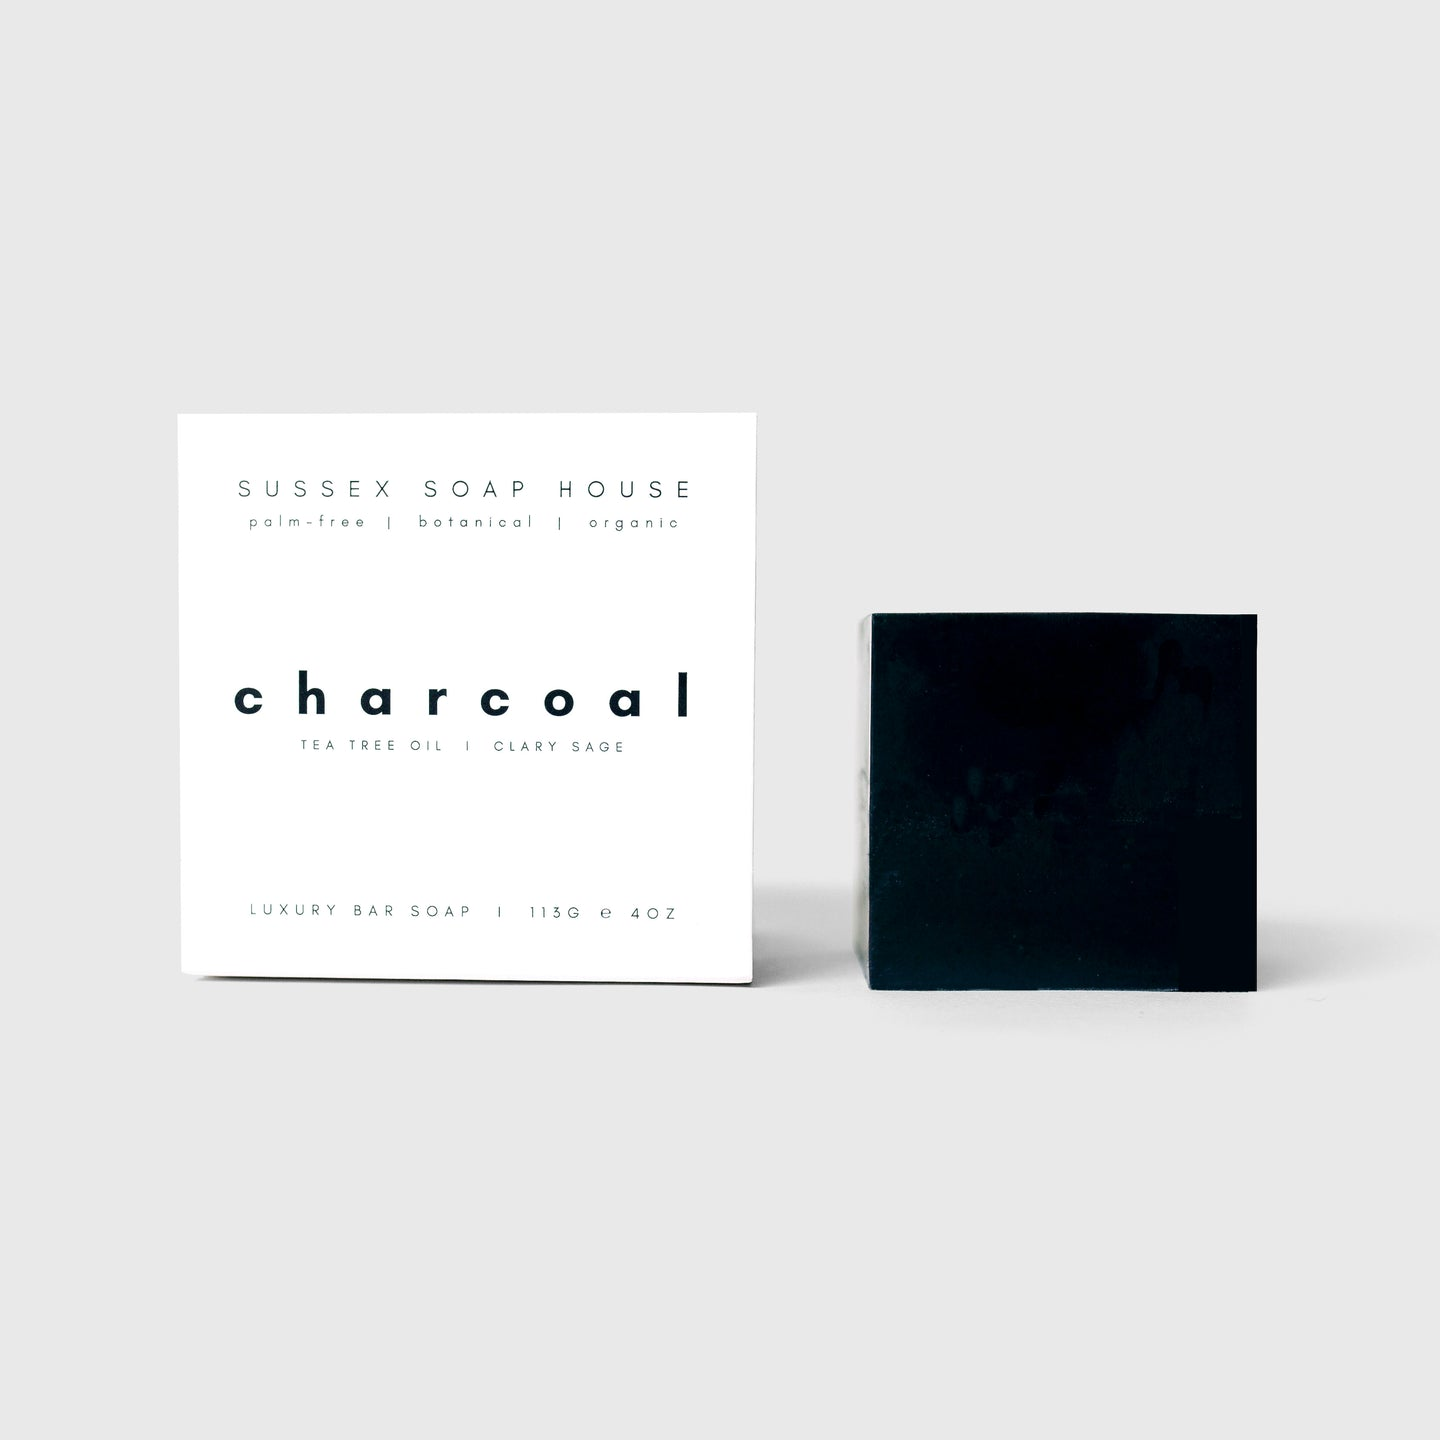 sussex soap house cube clay Formulated with Dorset charcoal, a soothing antibacterial blend of herbal essential oils such as tea tree & rosemary with nourishing cocoa butter, this charcoal bar gently exfoliates, drawing & absorbing impurities from the skin for a deep & natural cleanse